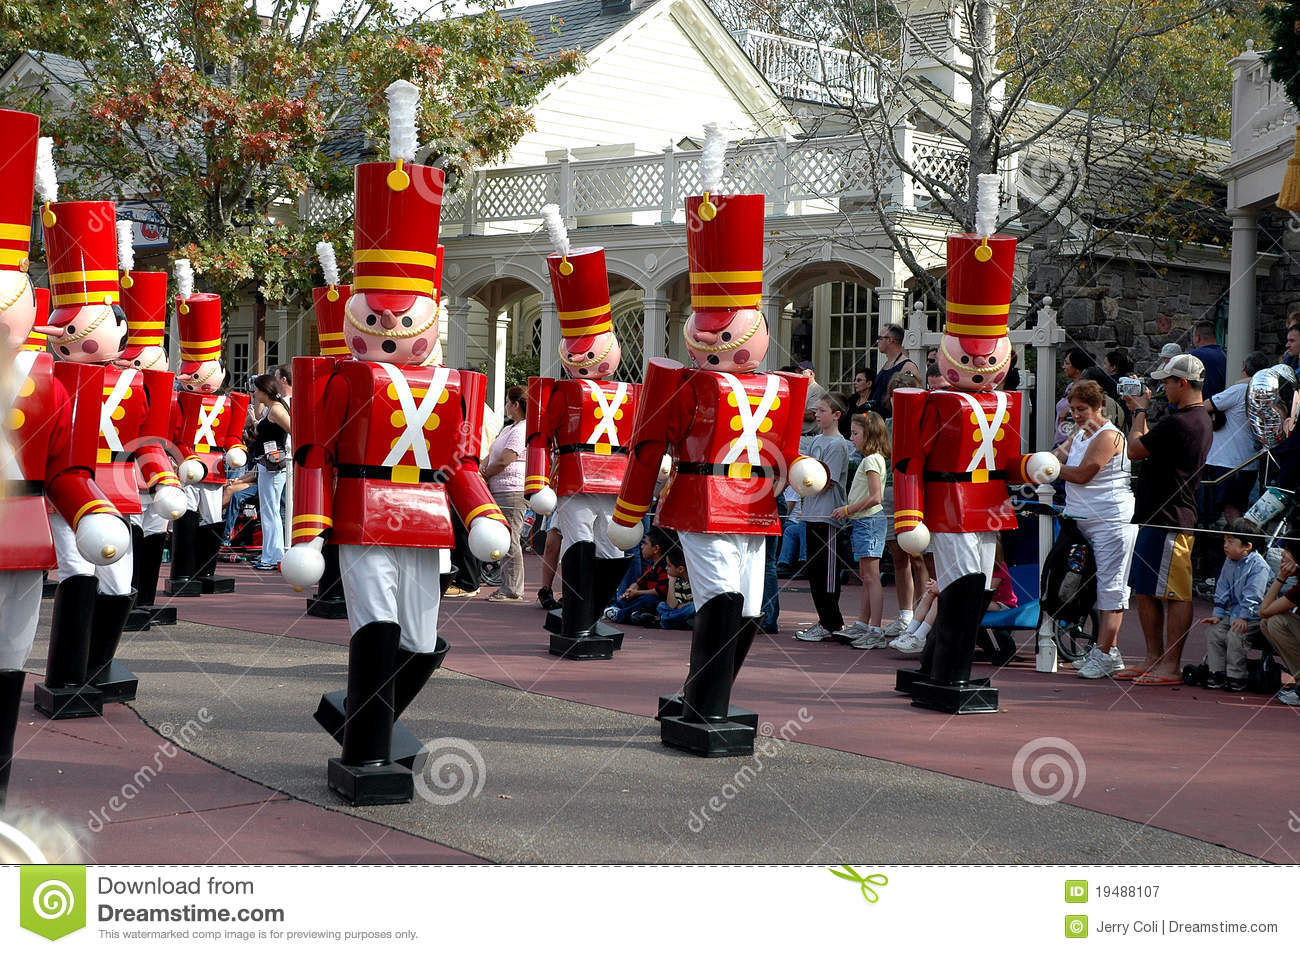 Toy Soldiers At The Disney World Christmas Parade